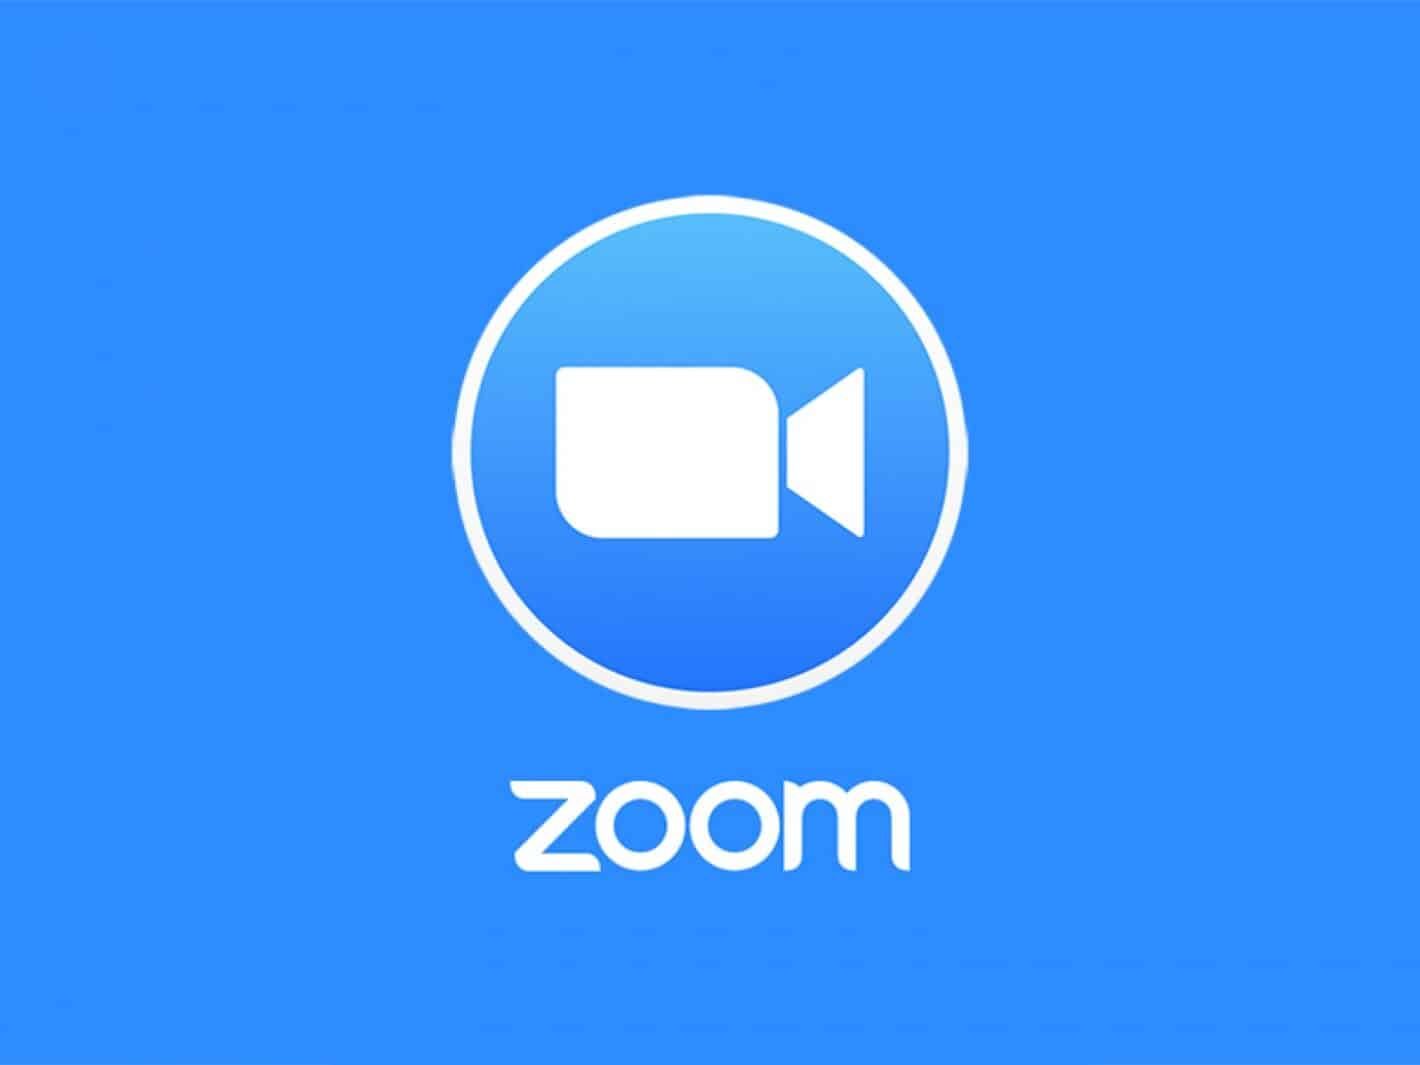 zoom android app update